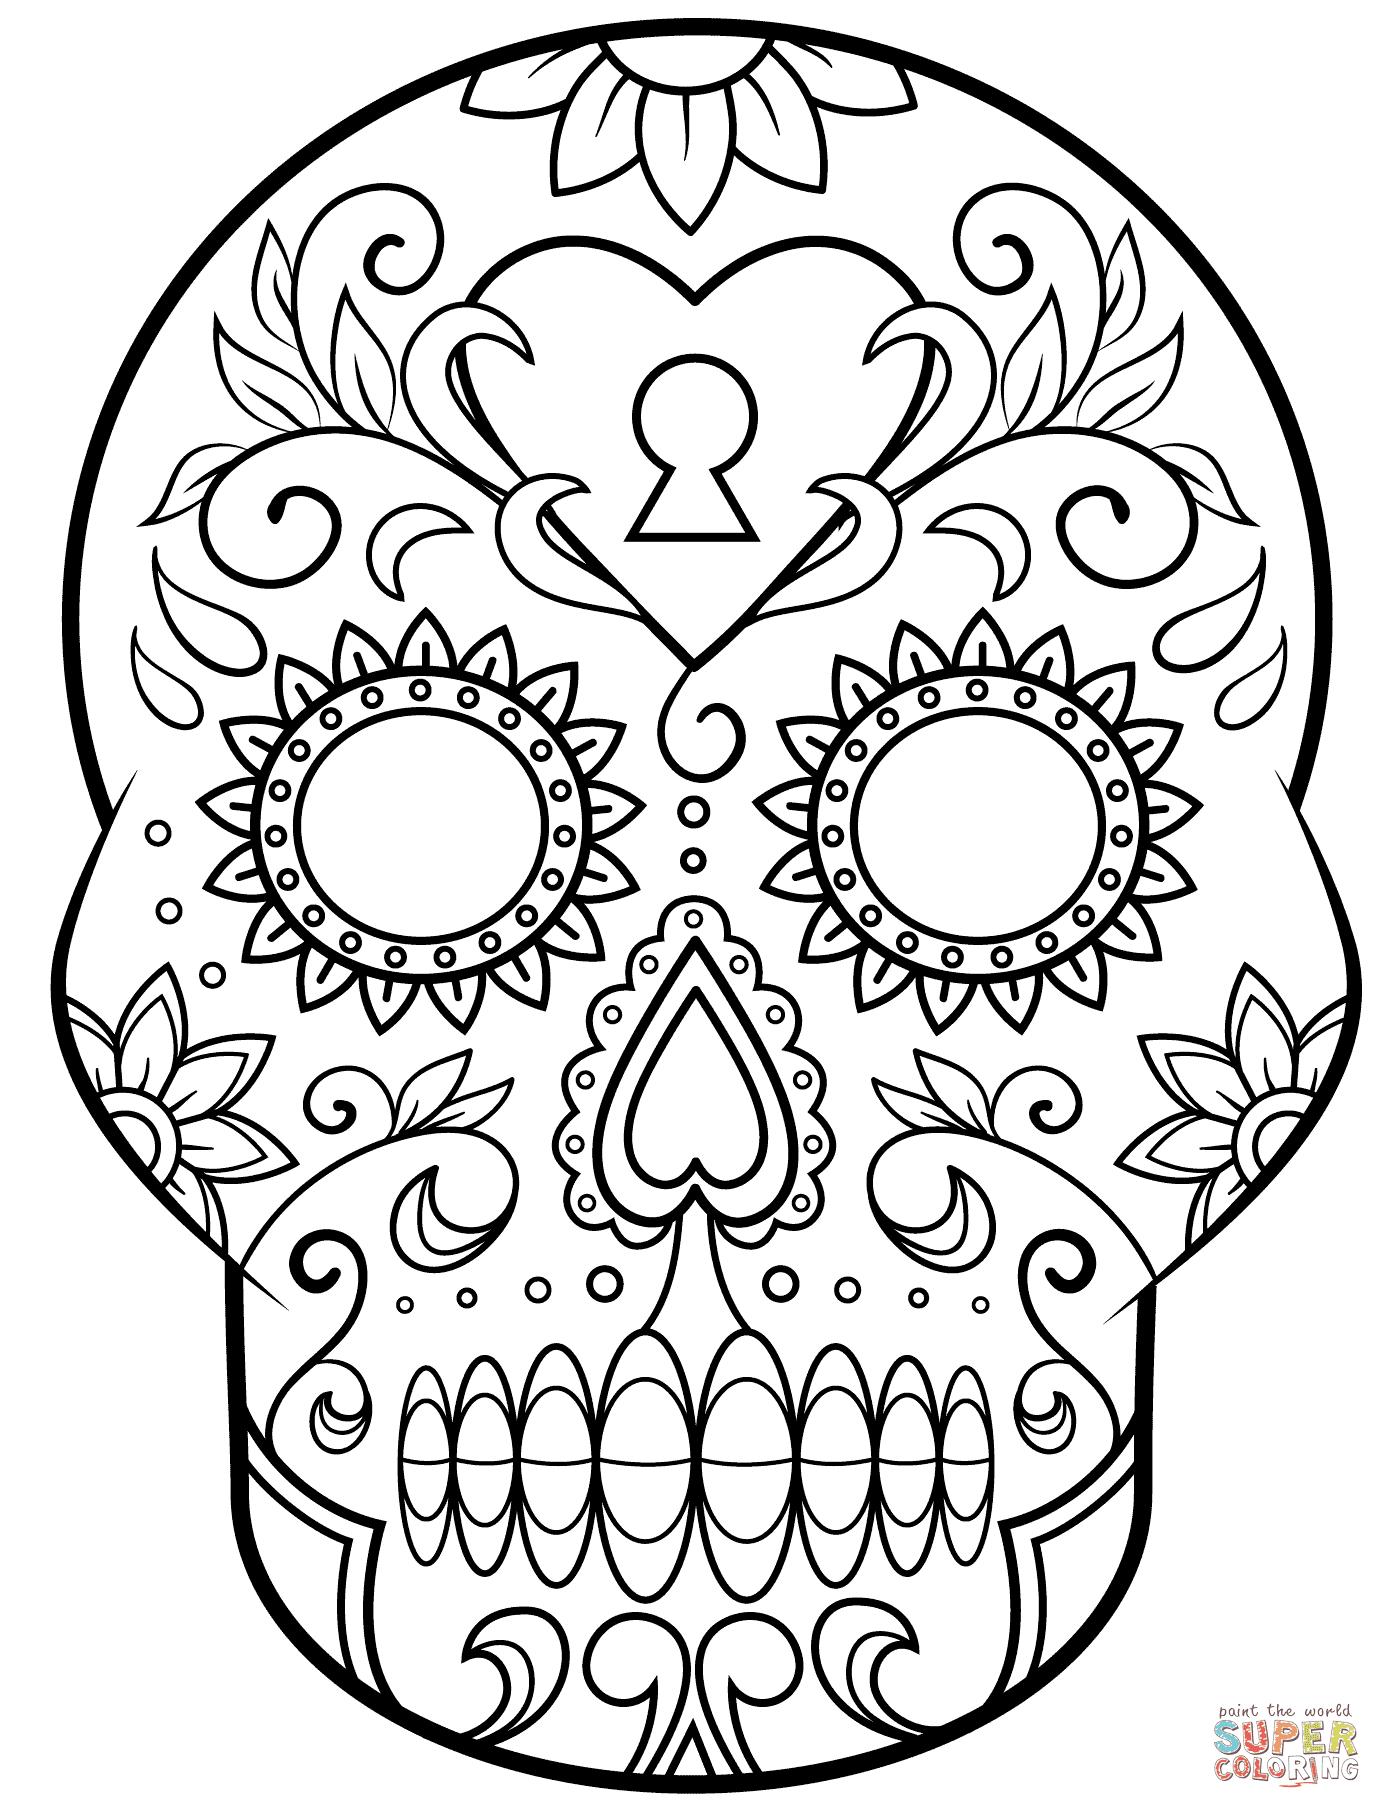 5300 Top Coloring Pages For Adults Sugar Skulls For Free